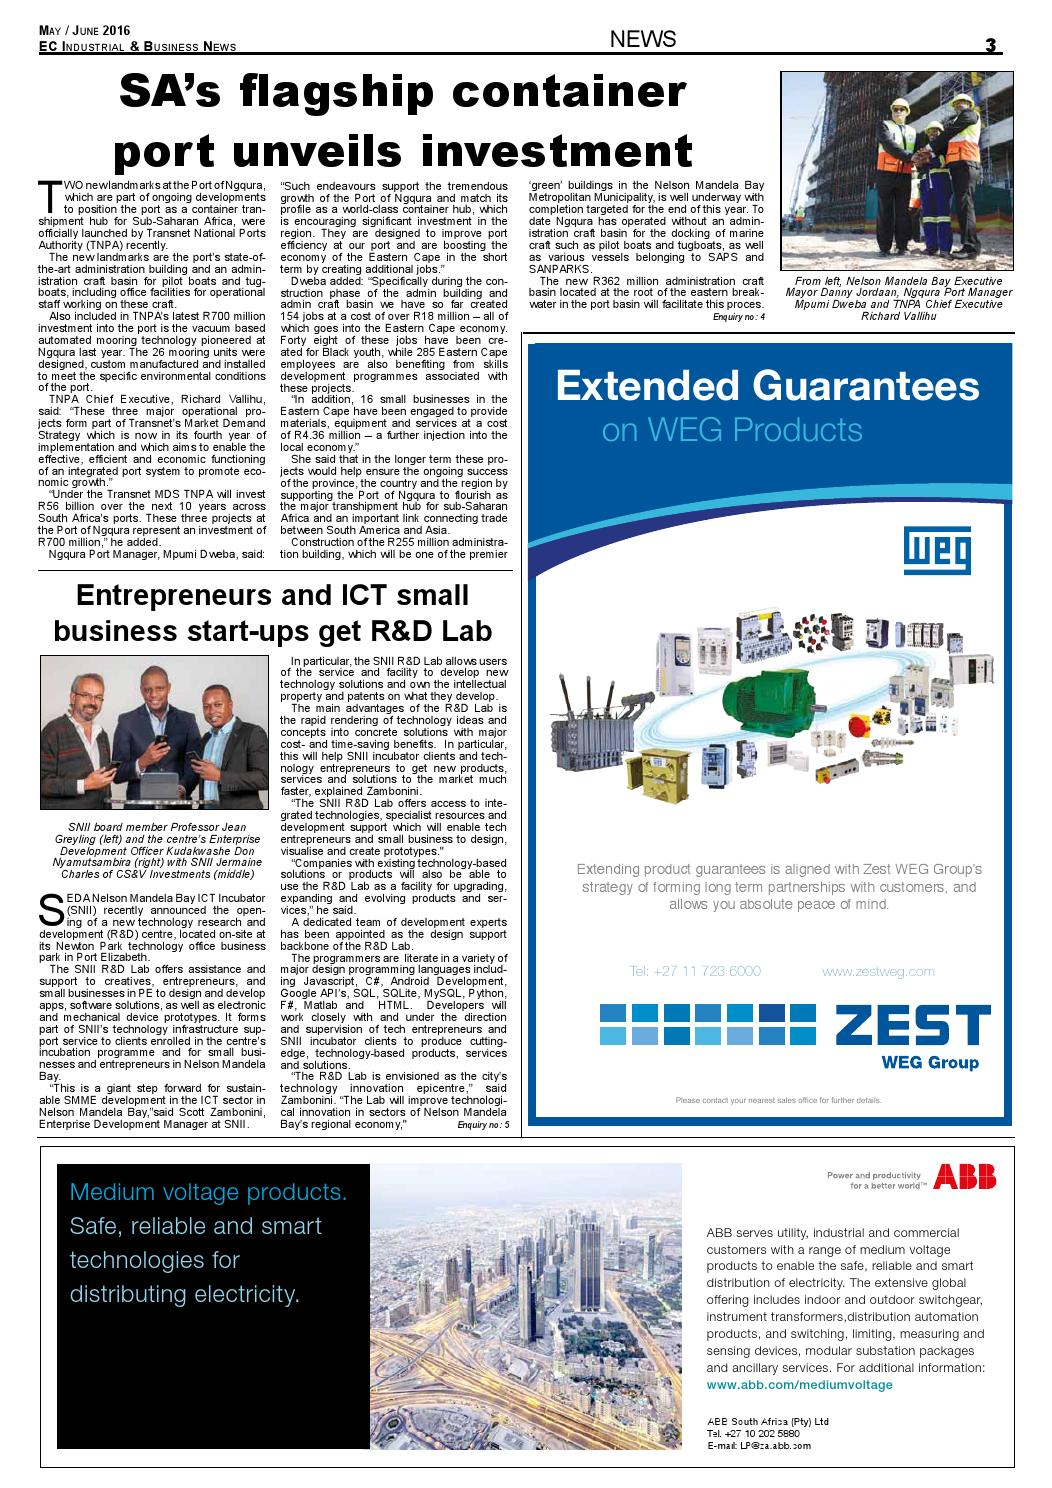 Ec industrial & business news issue 73 by The Media & Events